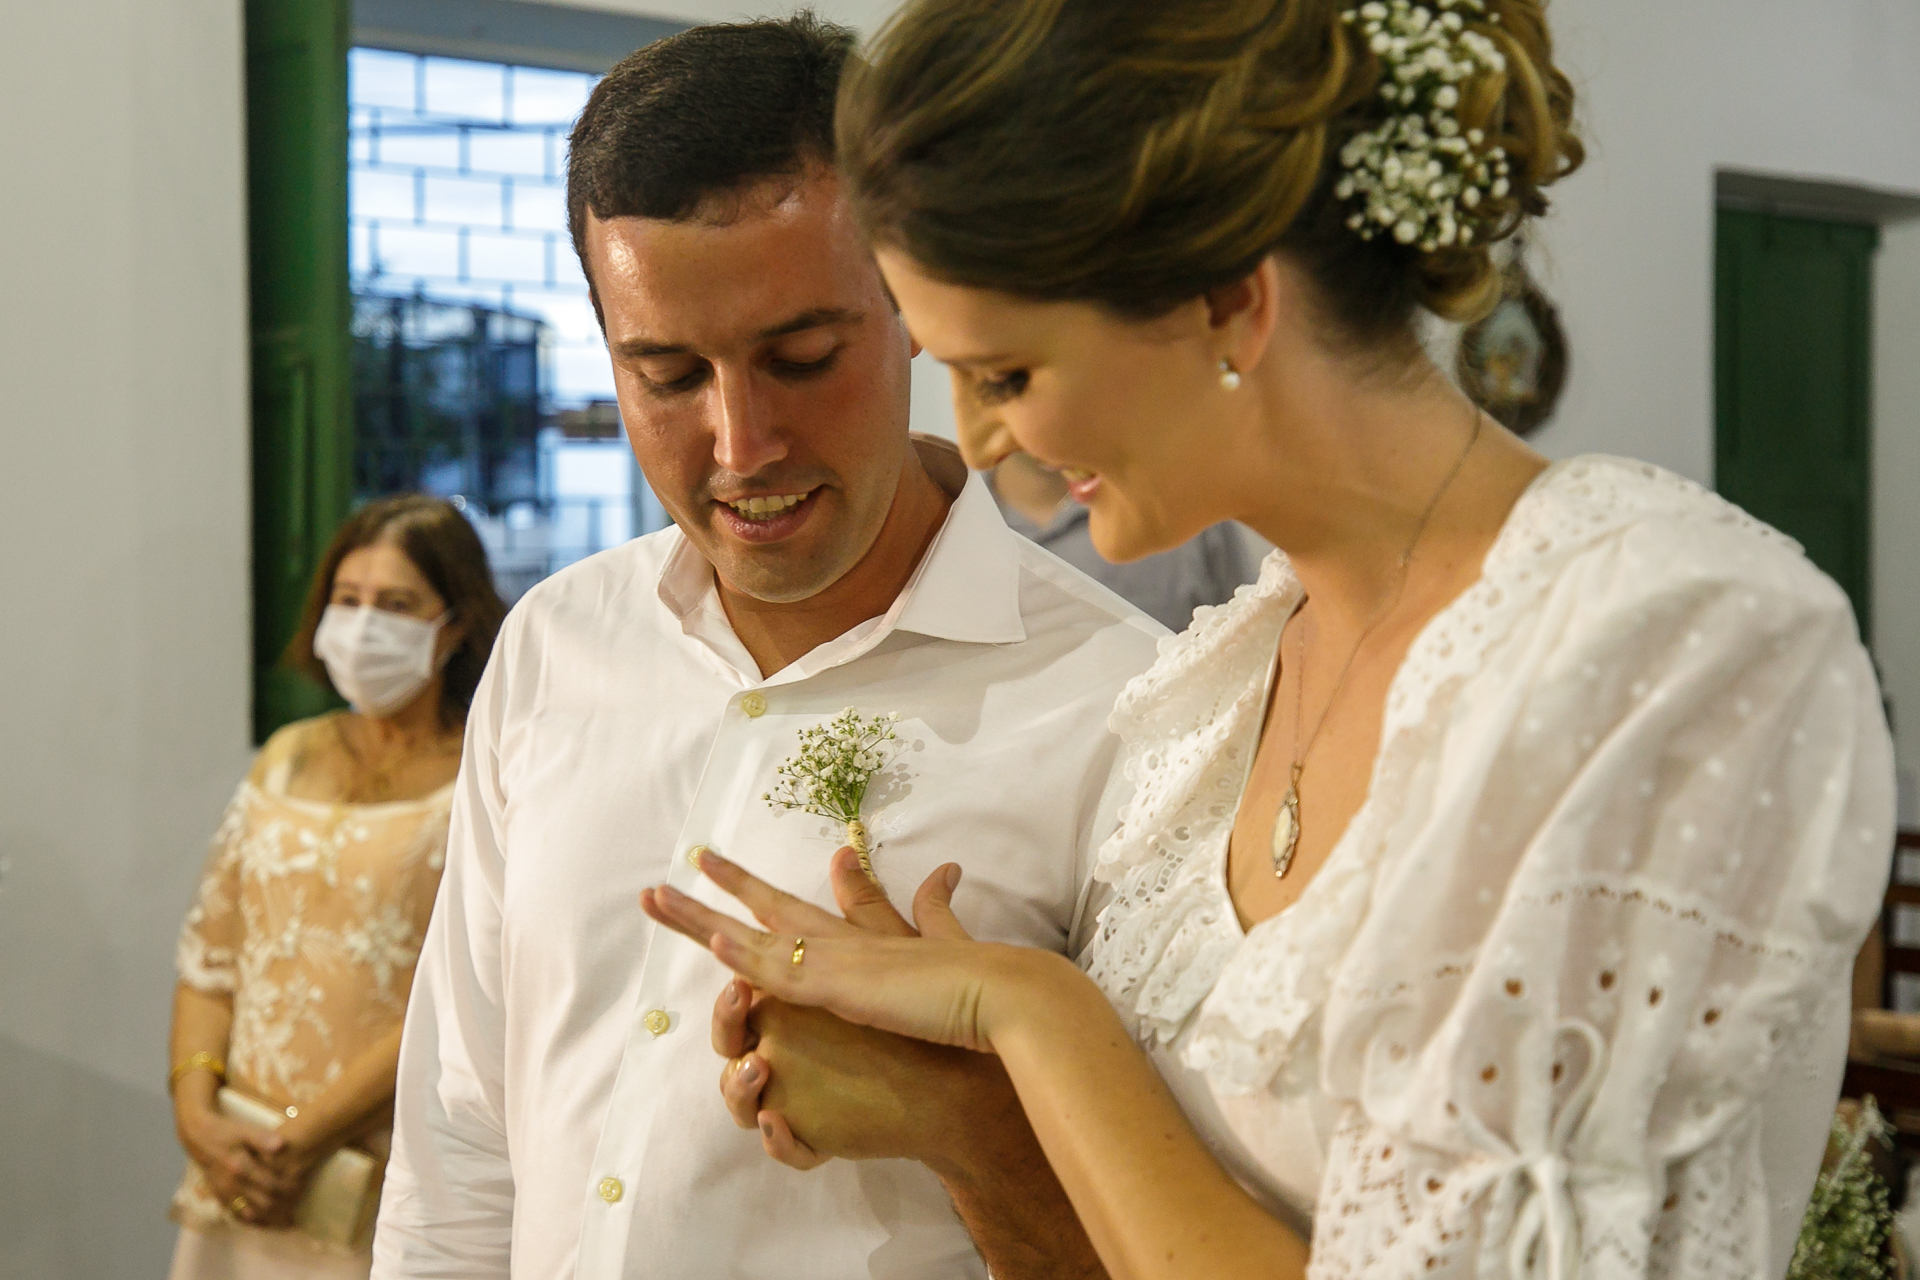 Wedding Ceremony Photo at AL, Brazil | The bride smiles and admires her new wedding ring